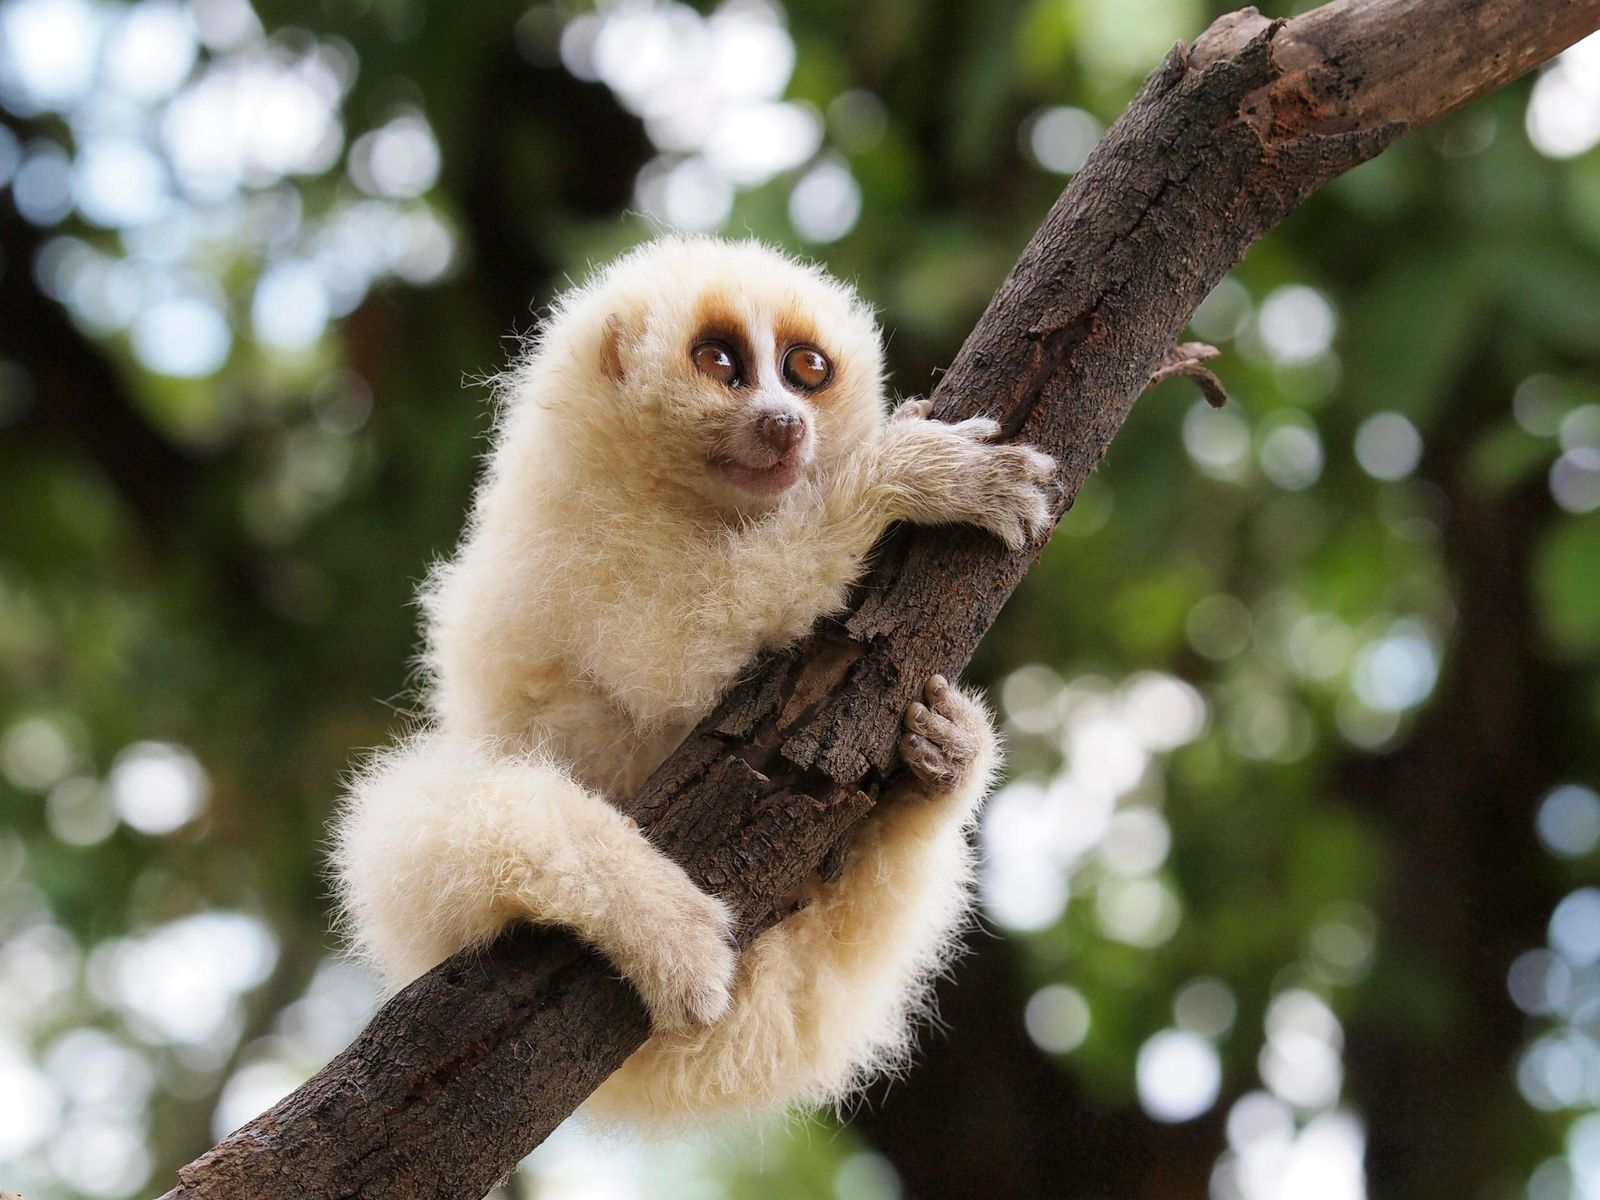 The Cute-But-Deadly Slow Loris Reserves Its Flesh-Rotting Venom for Its Peers